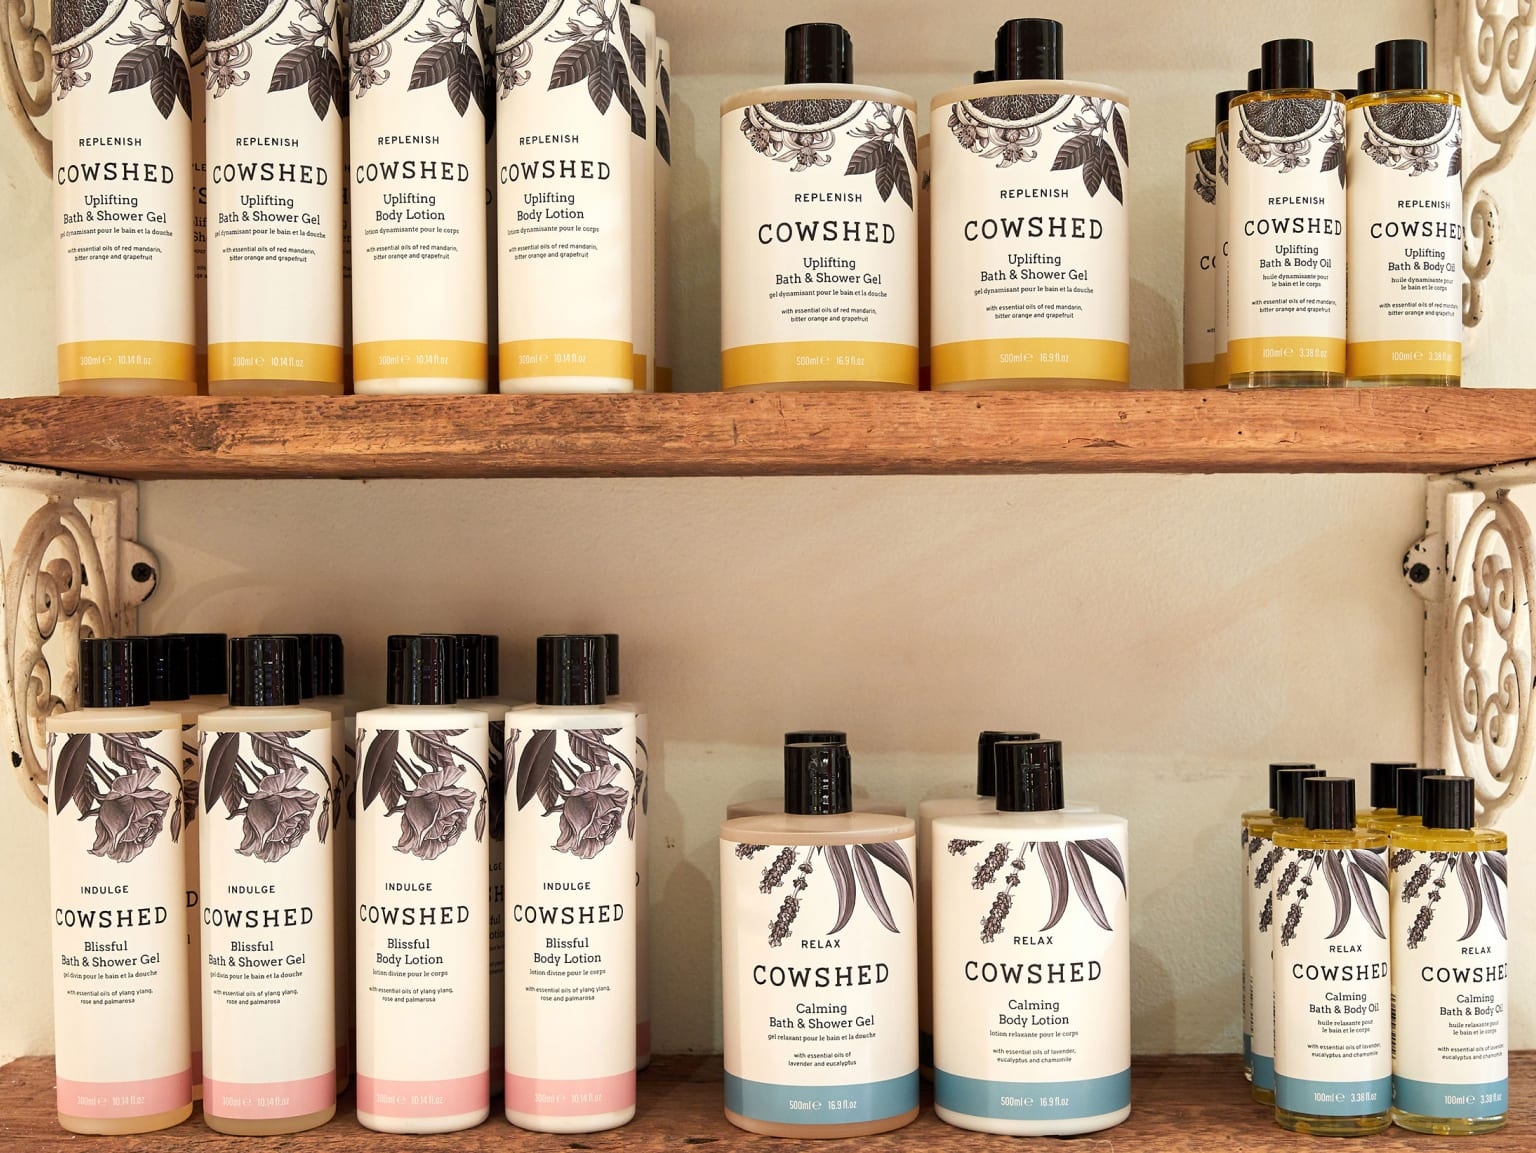 Beauty products on shelves.